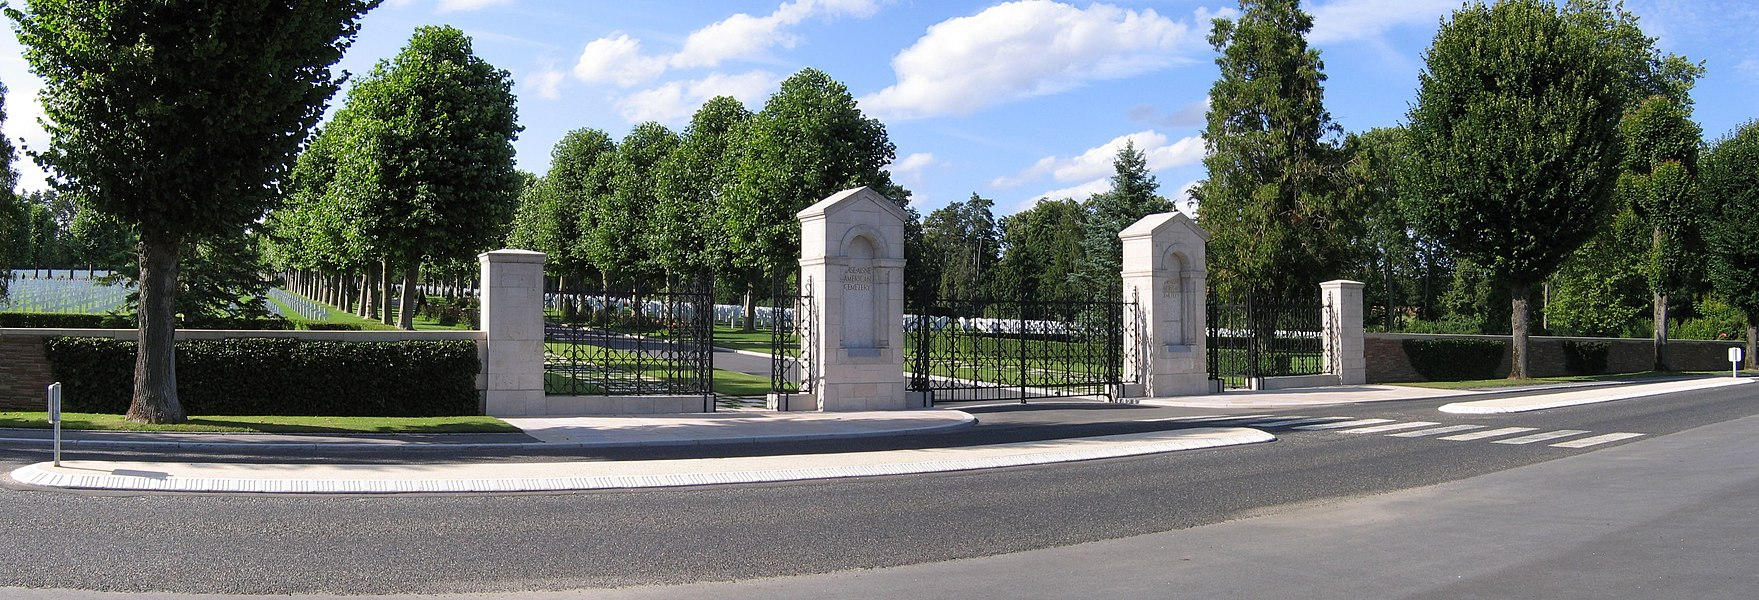 Main entrance of Oise-Aisne American Cemetary in Seringes-et-Nesles, near Fère-en-Tardenois, France